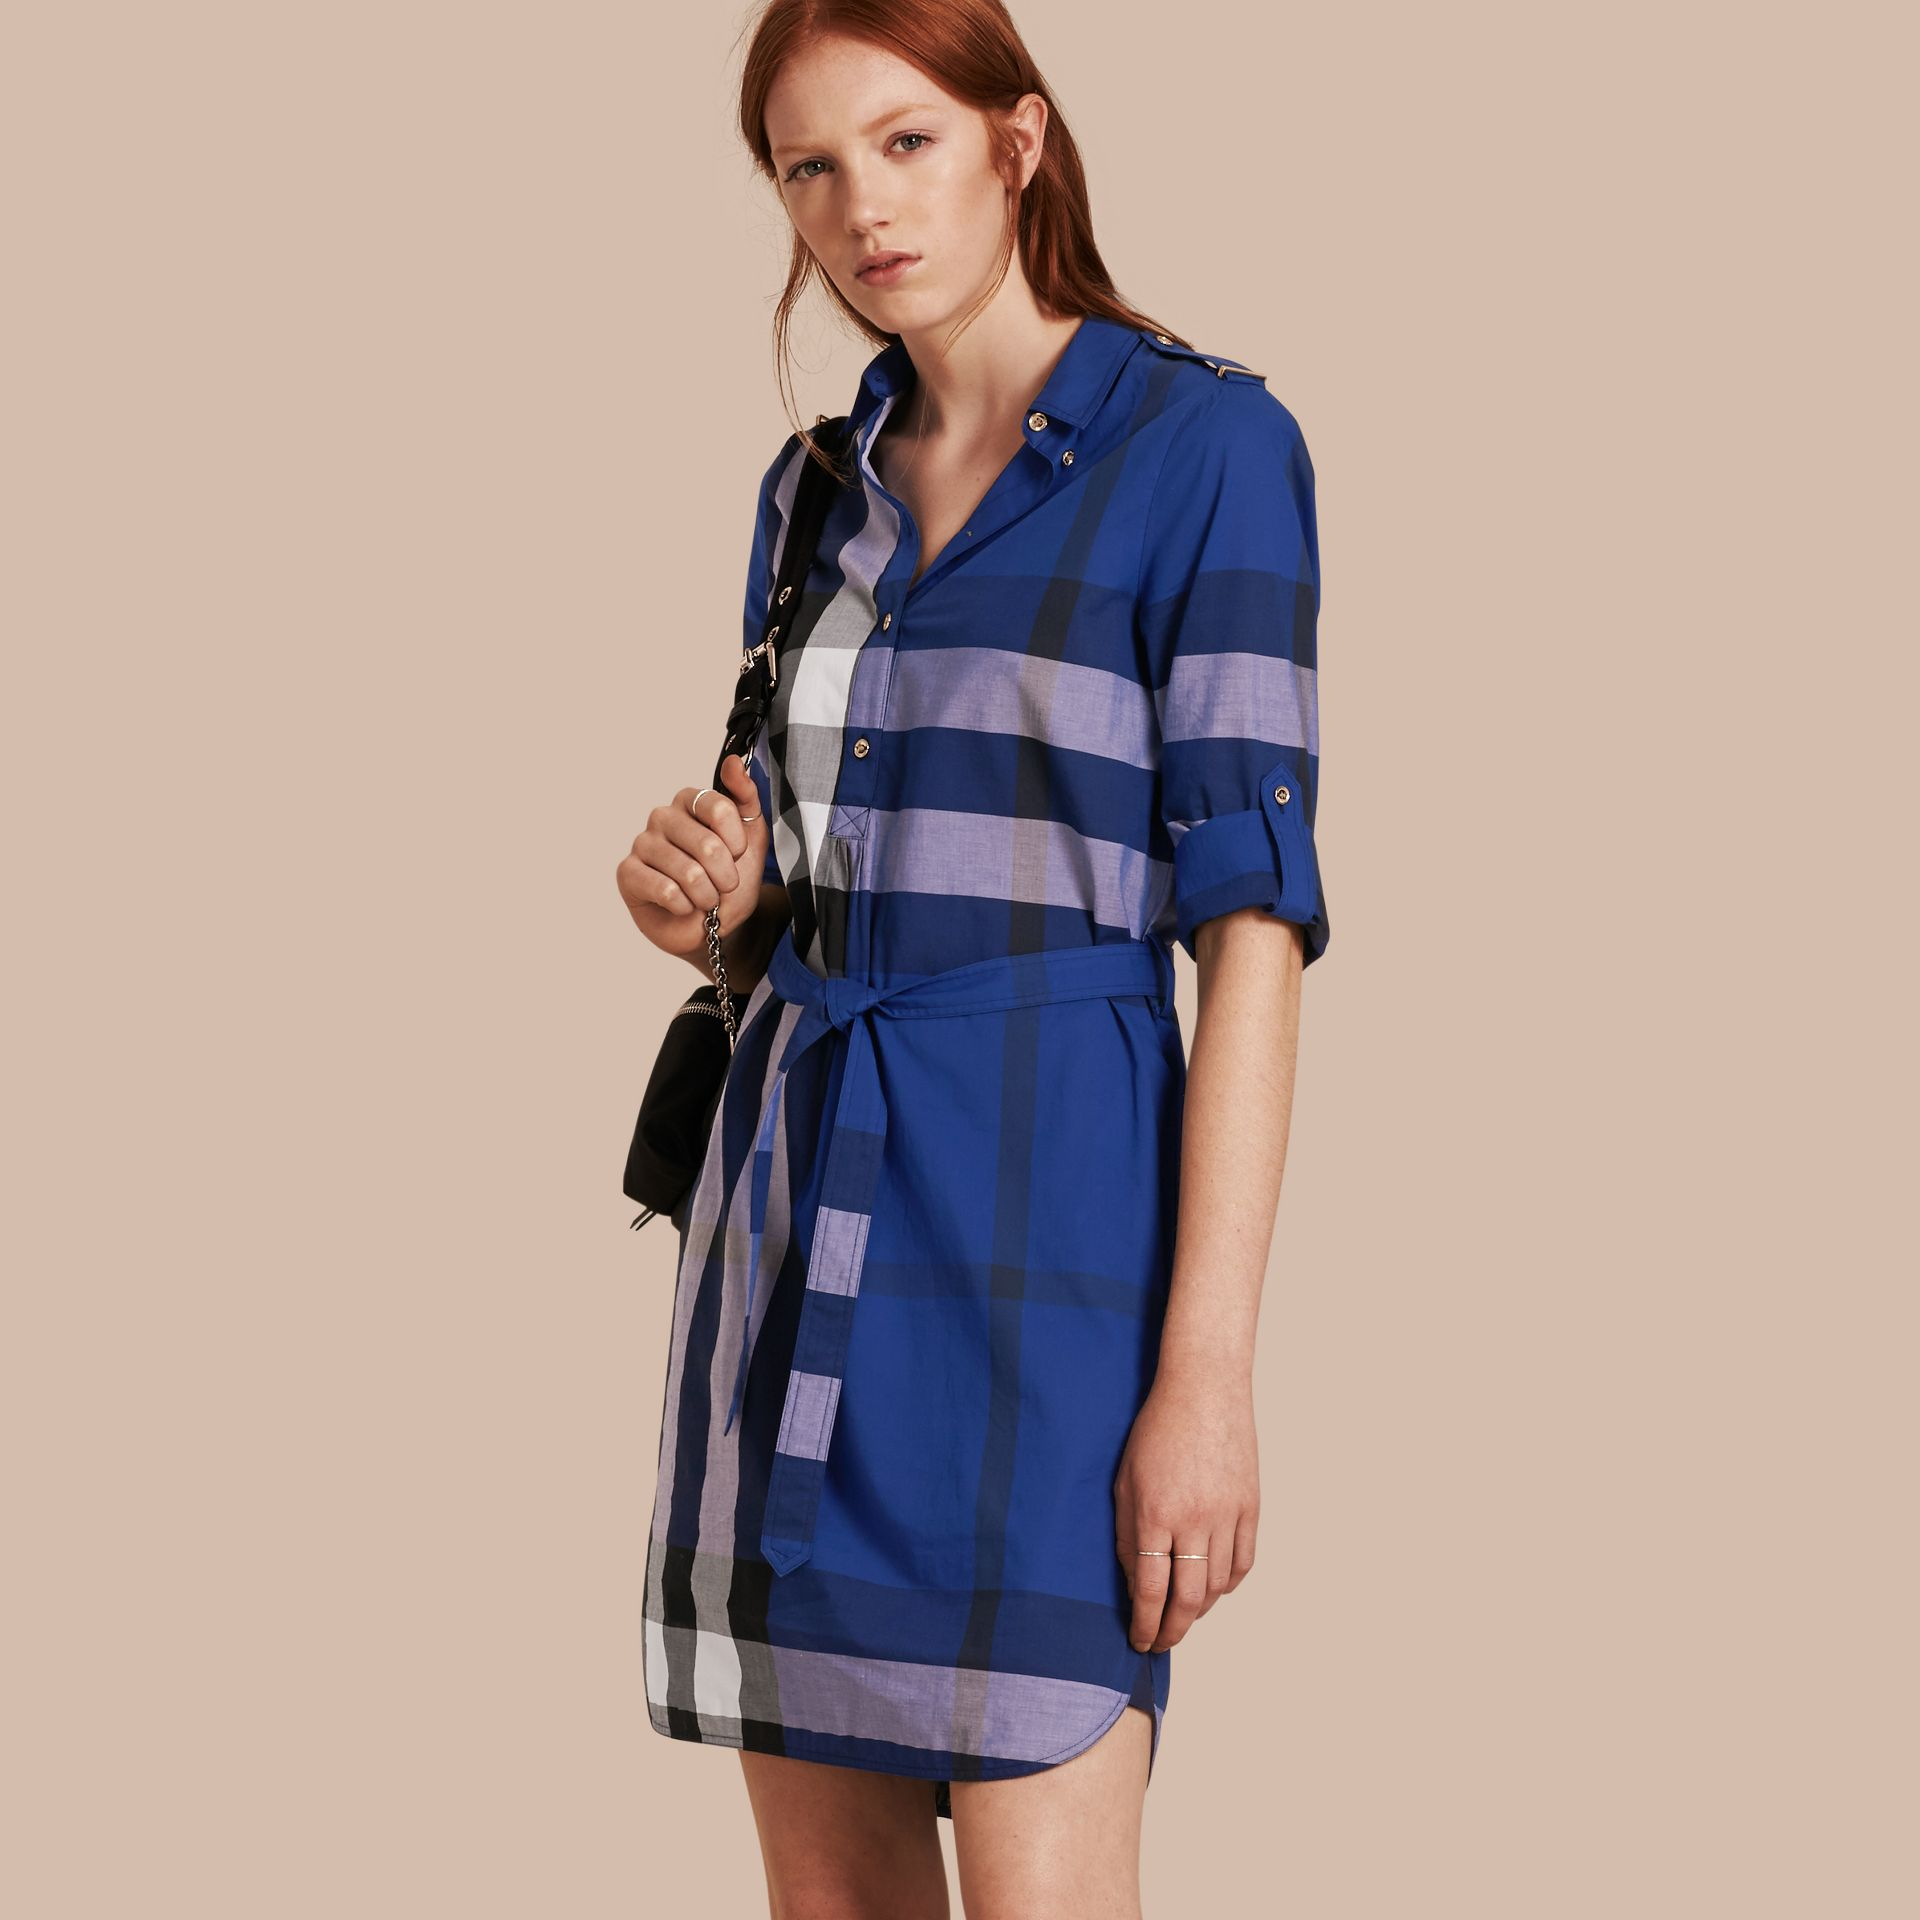 Brilliant blue Check Cotton Shirt Dress Brilliant Blue - gallery image 1